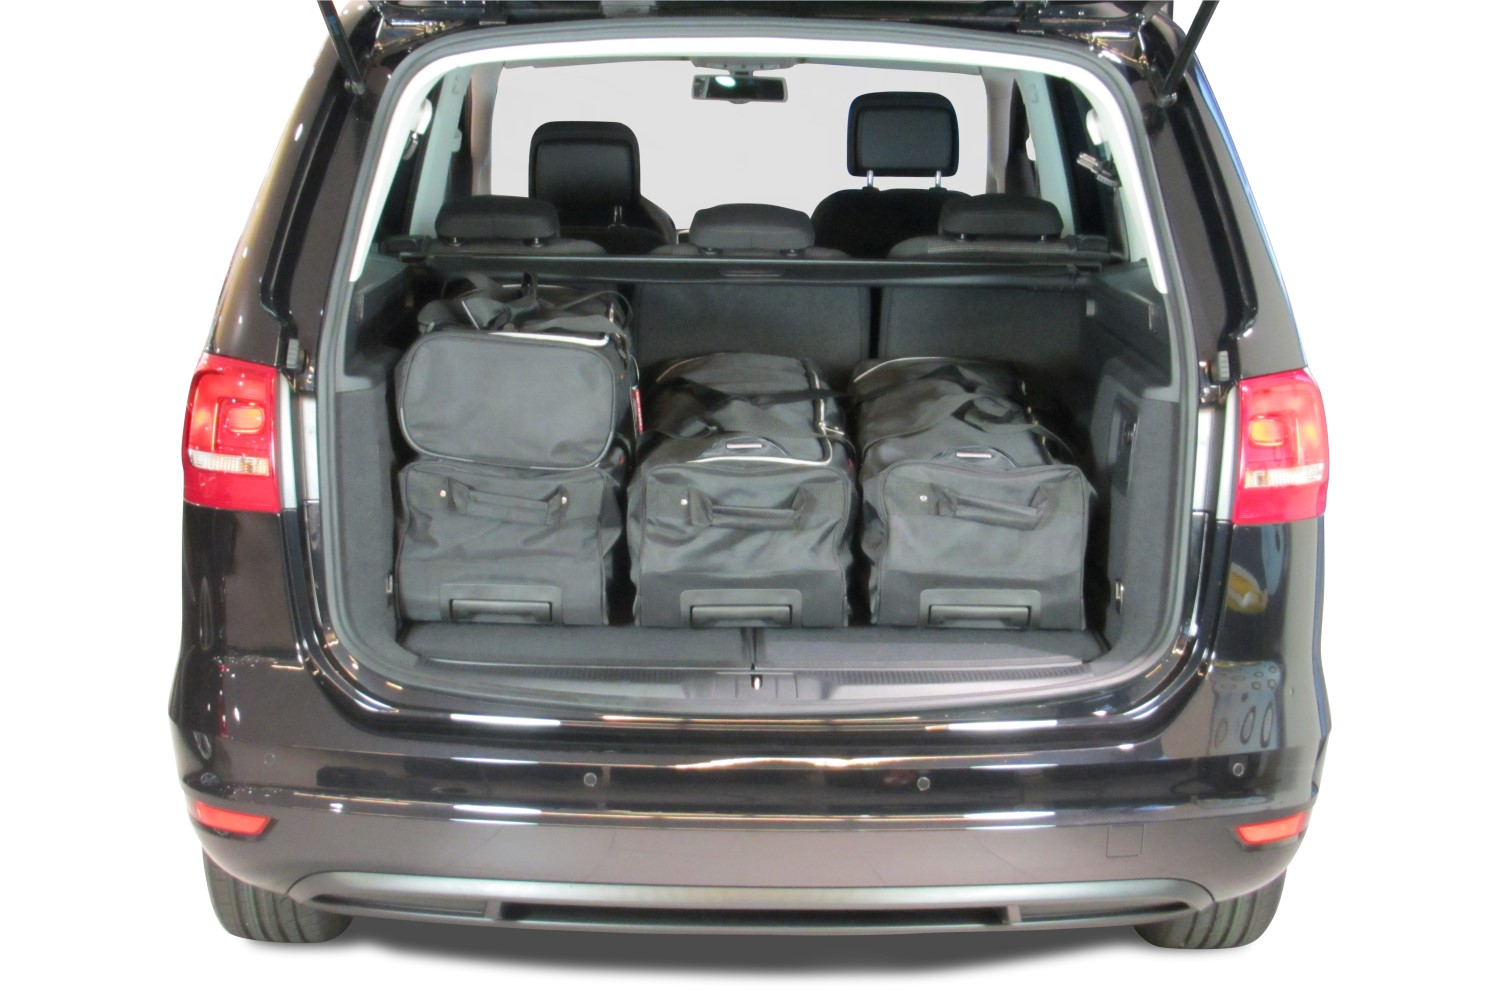 vw sharan ii 7n car travel bags car. Black Bedroom Furniture Sets. Home Design Ideas